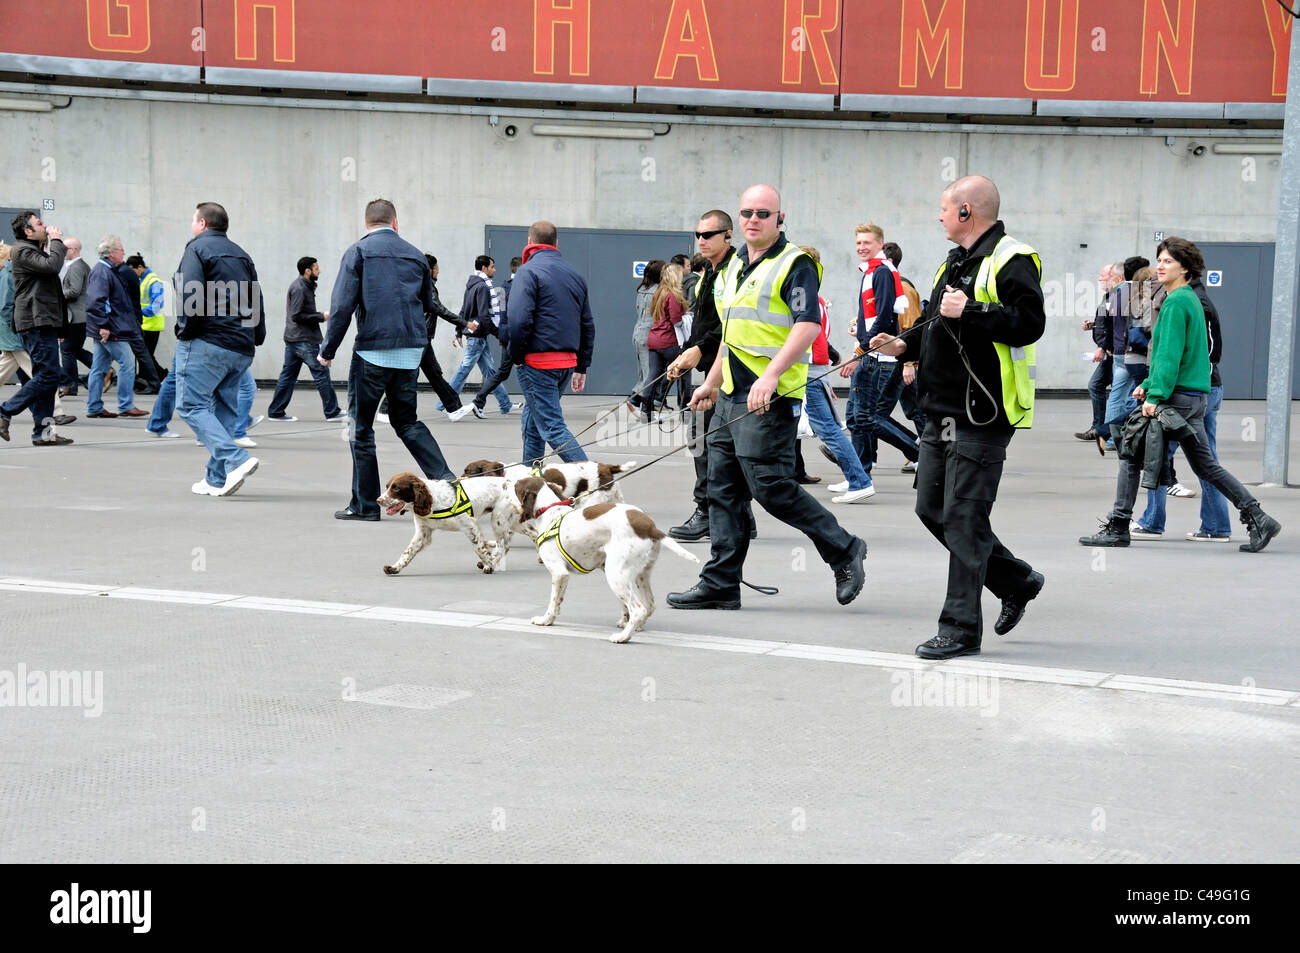 Sniffer dogs with handlers at the Emirates Stadium - Stock Image